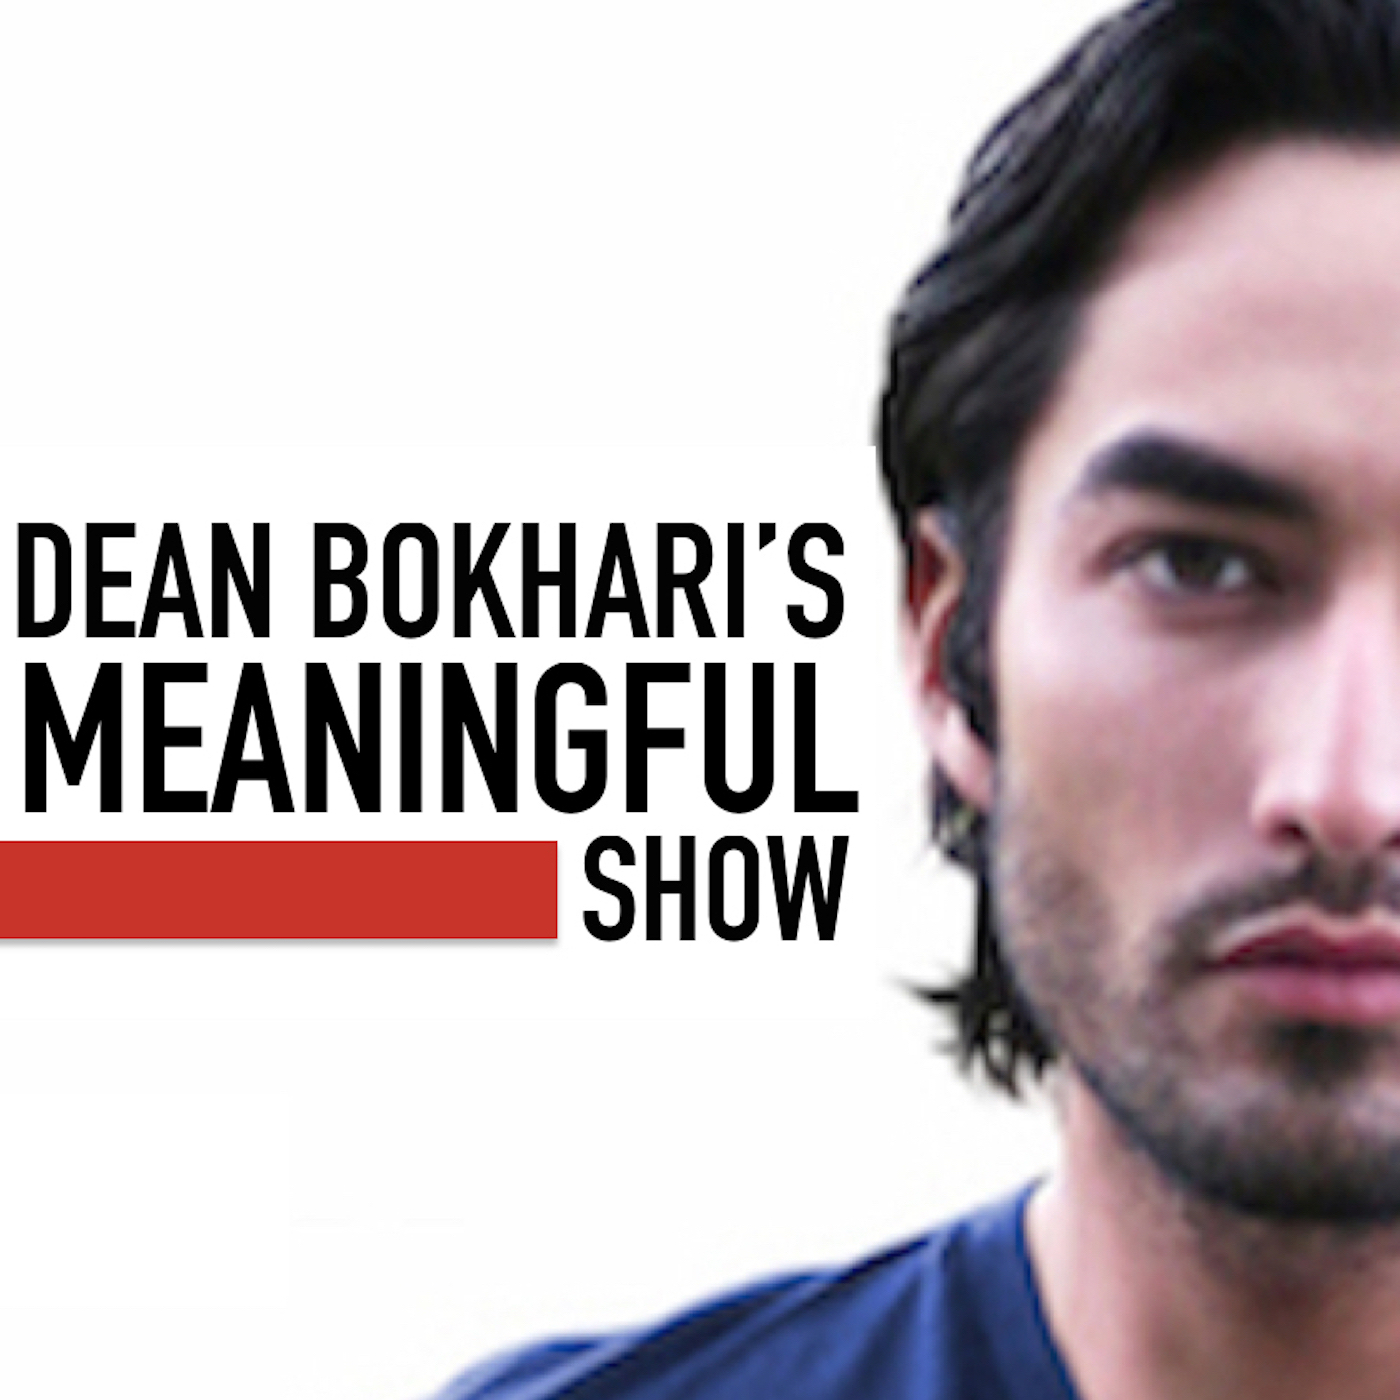 The Meaningful Show With Dean Bokhari